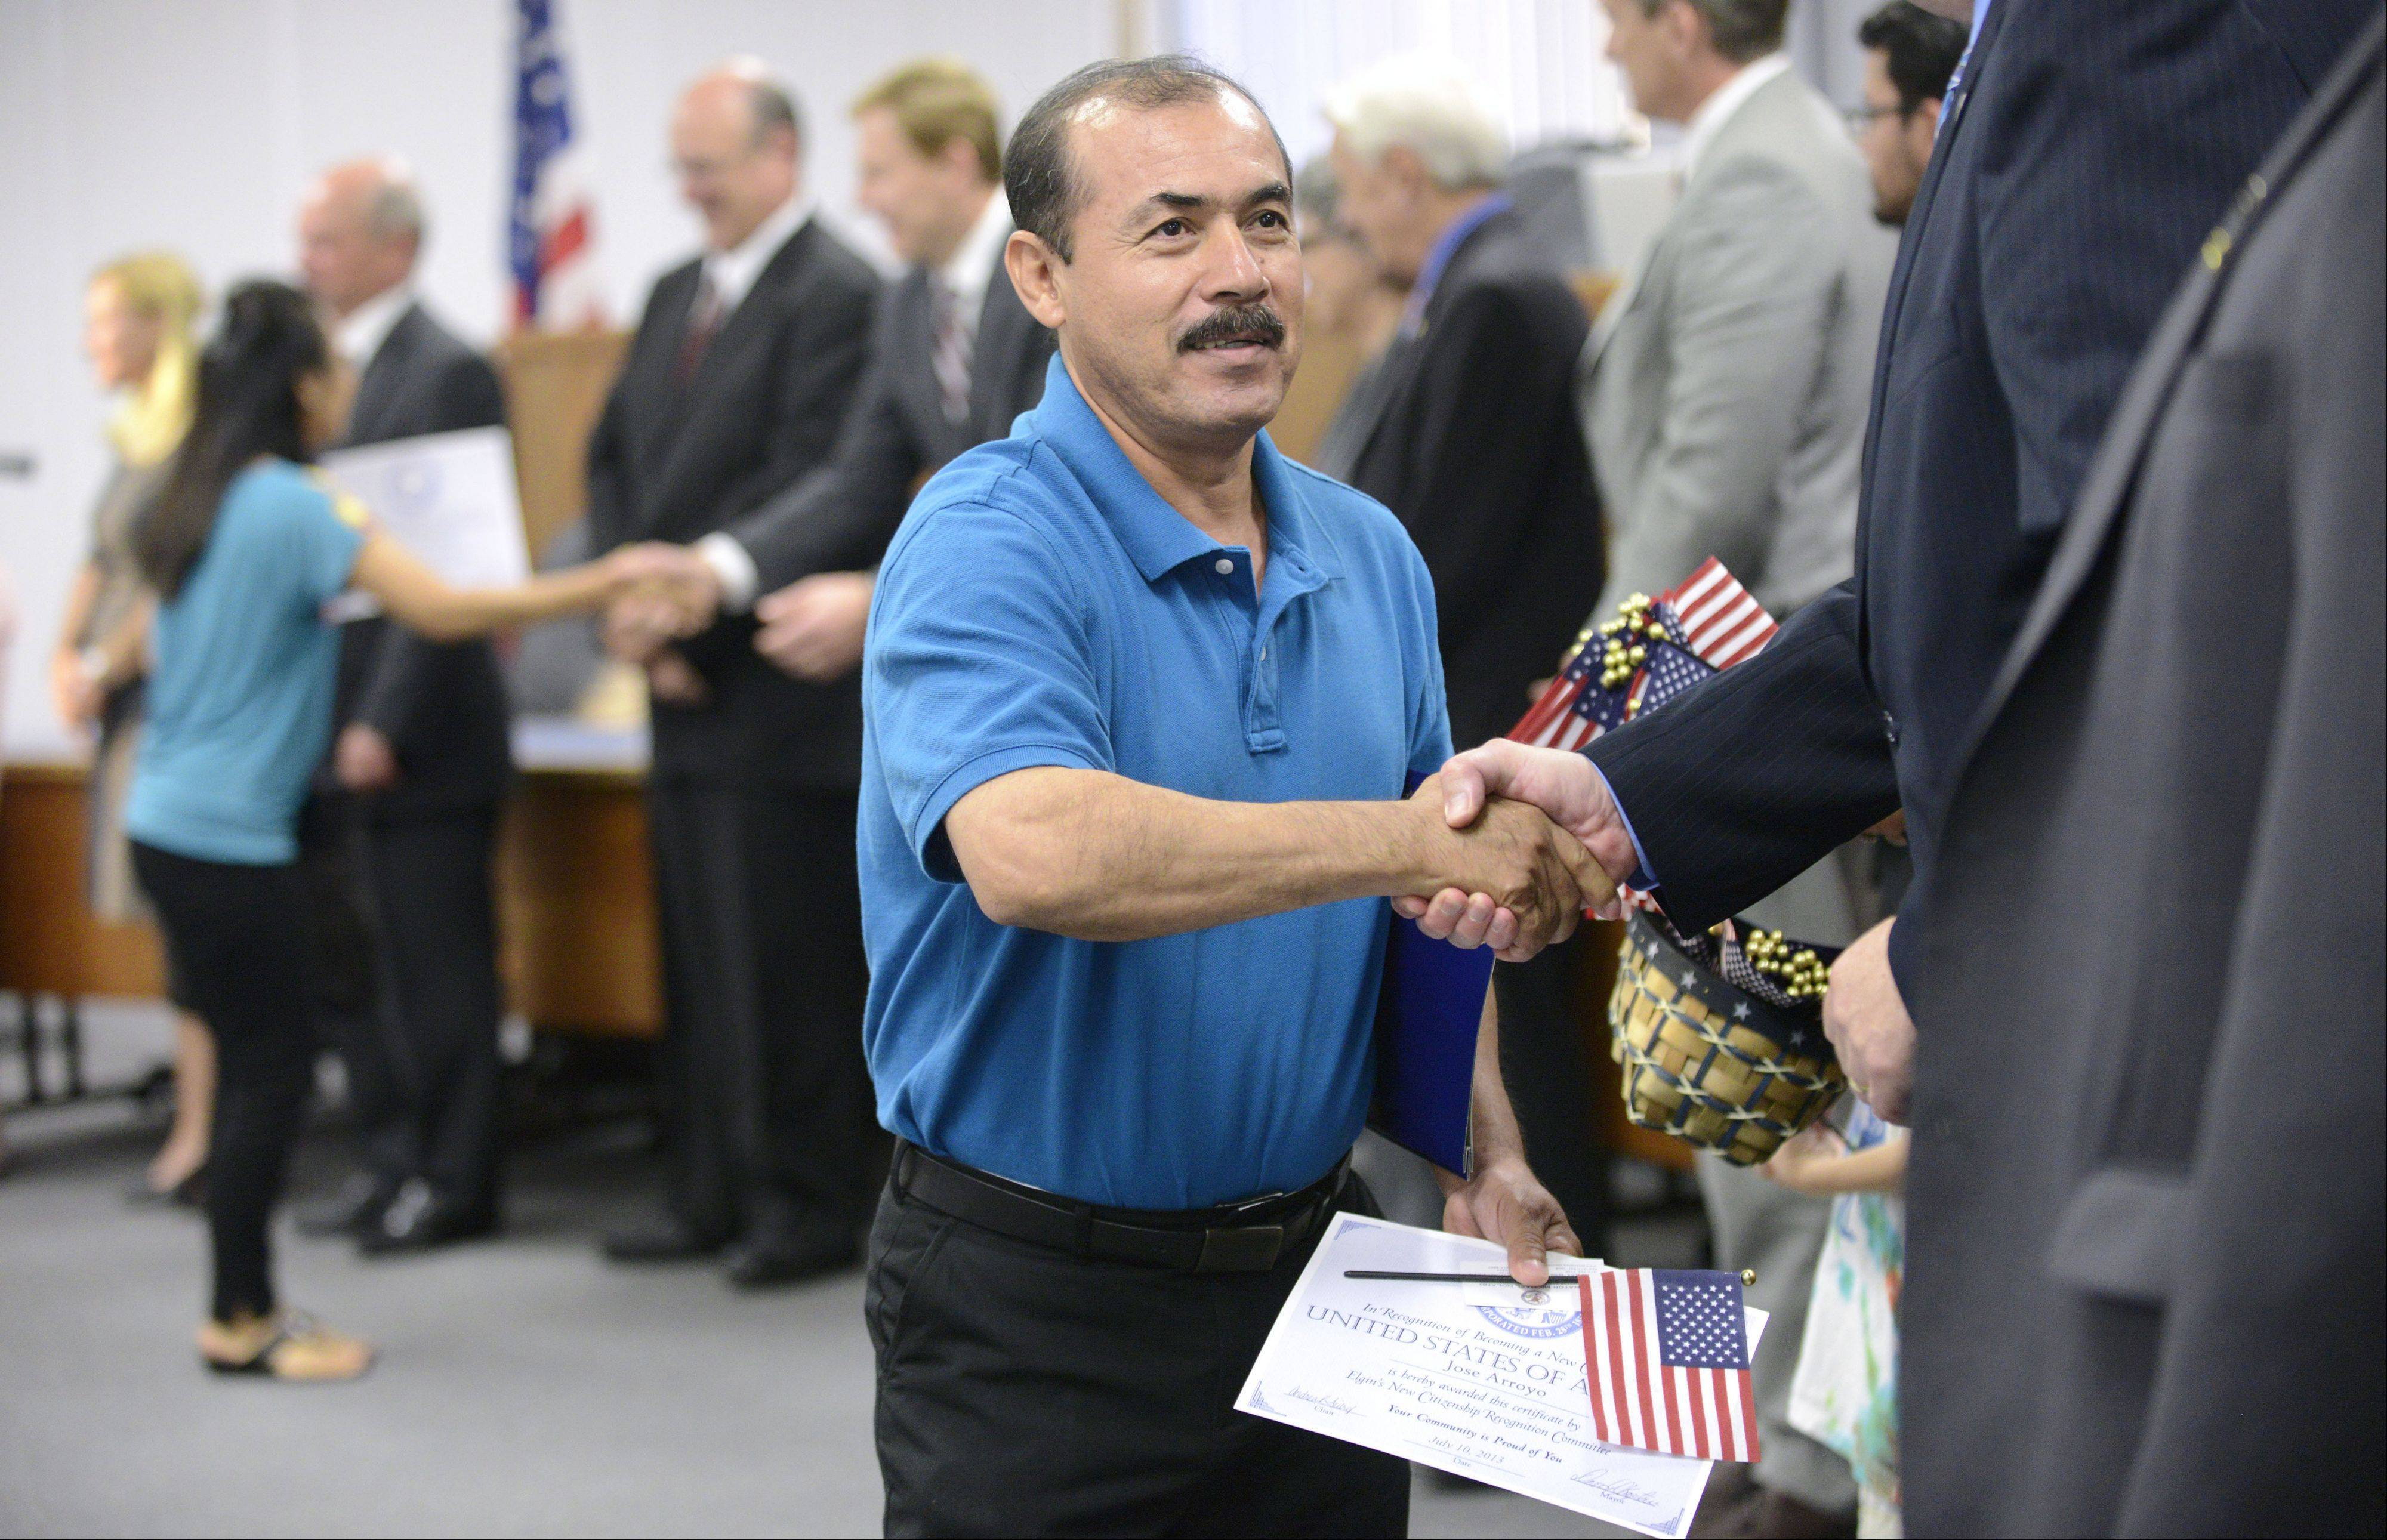 Jose Arroyo, a Streamwood resident originally from Mexico, shakes the hands of Elgin City Council members during the 15th annual new citizenship recognition ceremony Wednesday. Arroyo came from Mexico 10 years ago.